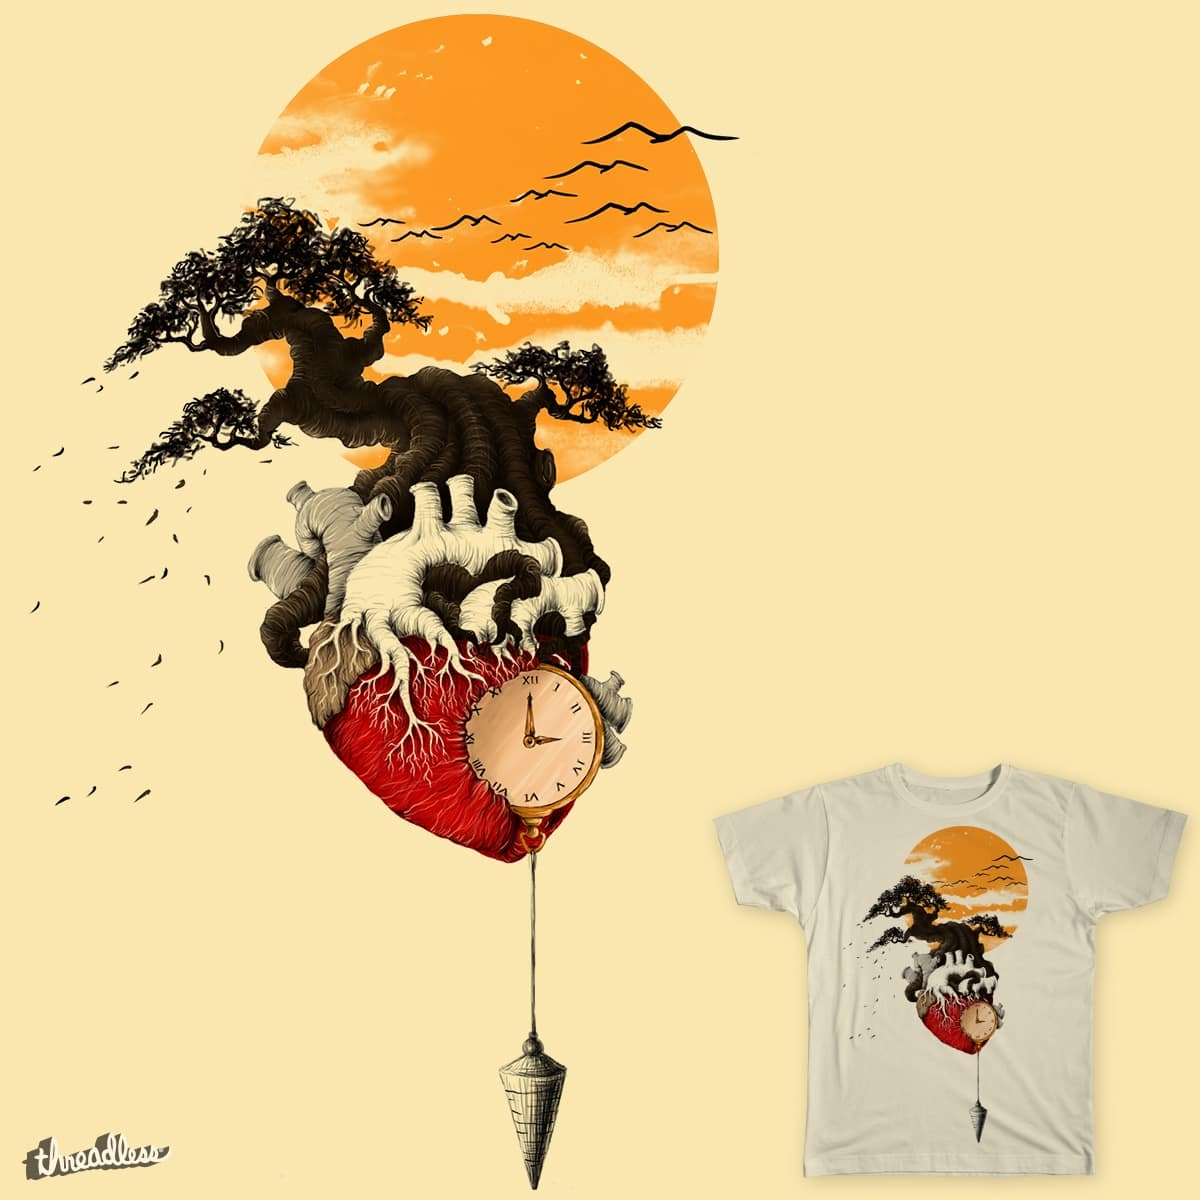 Time by flintskyy on Threadless